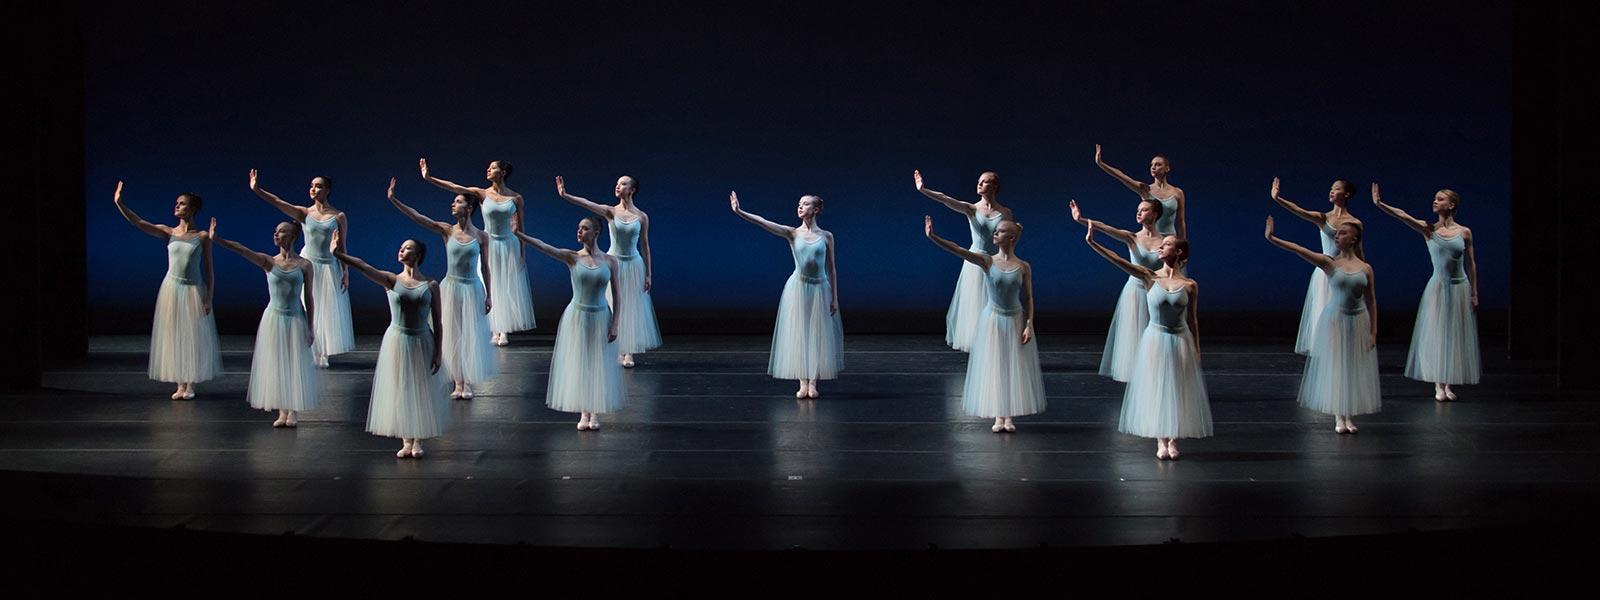 """Serenade"" Choreography by George Balanchine © The George Balanchine Trust / Photo: Peter J. Mueller"